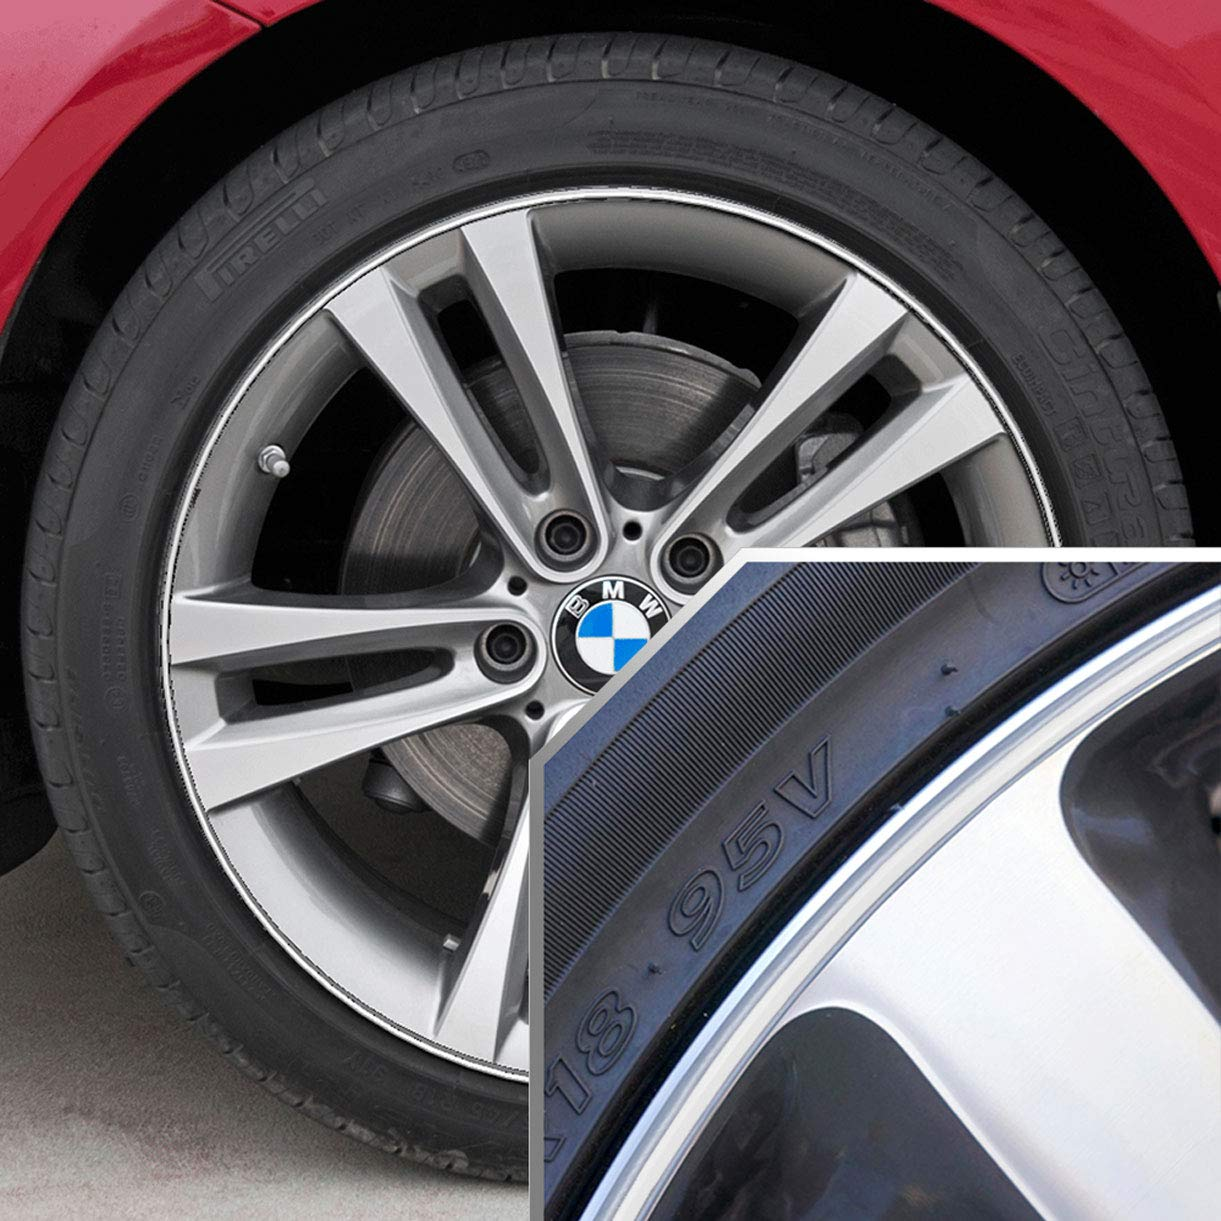 Upgrade Your Auto Wheel Bands Neon Green in Black Pinstripe Rim Edge Trim for BMW I3 Full Kit